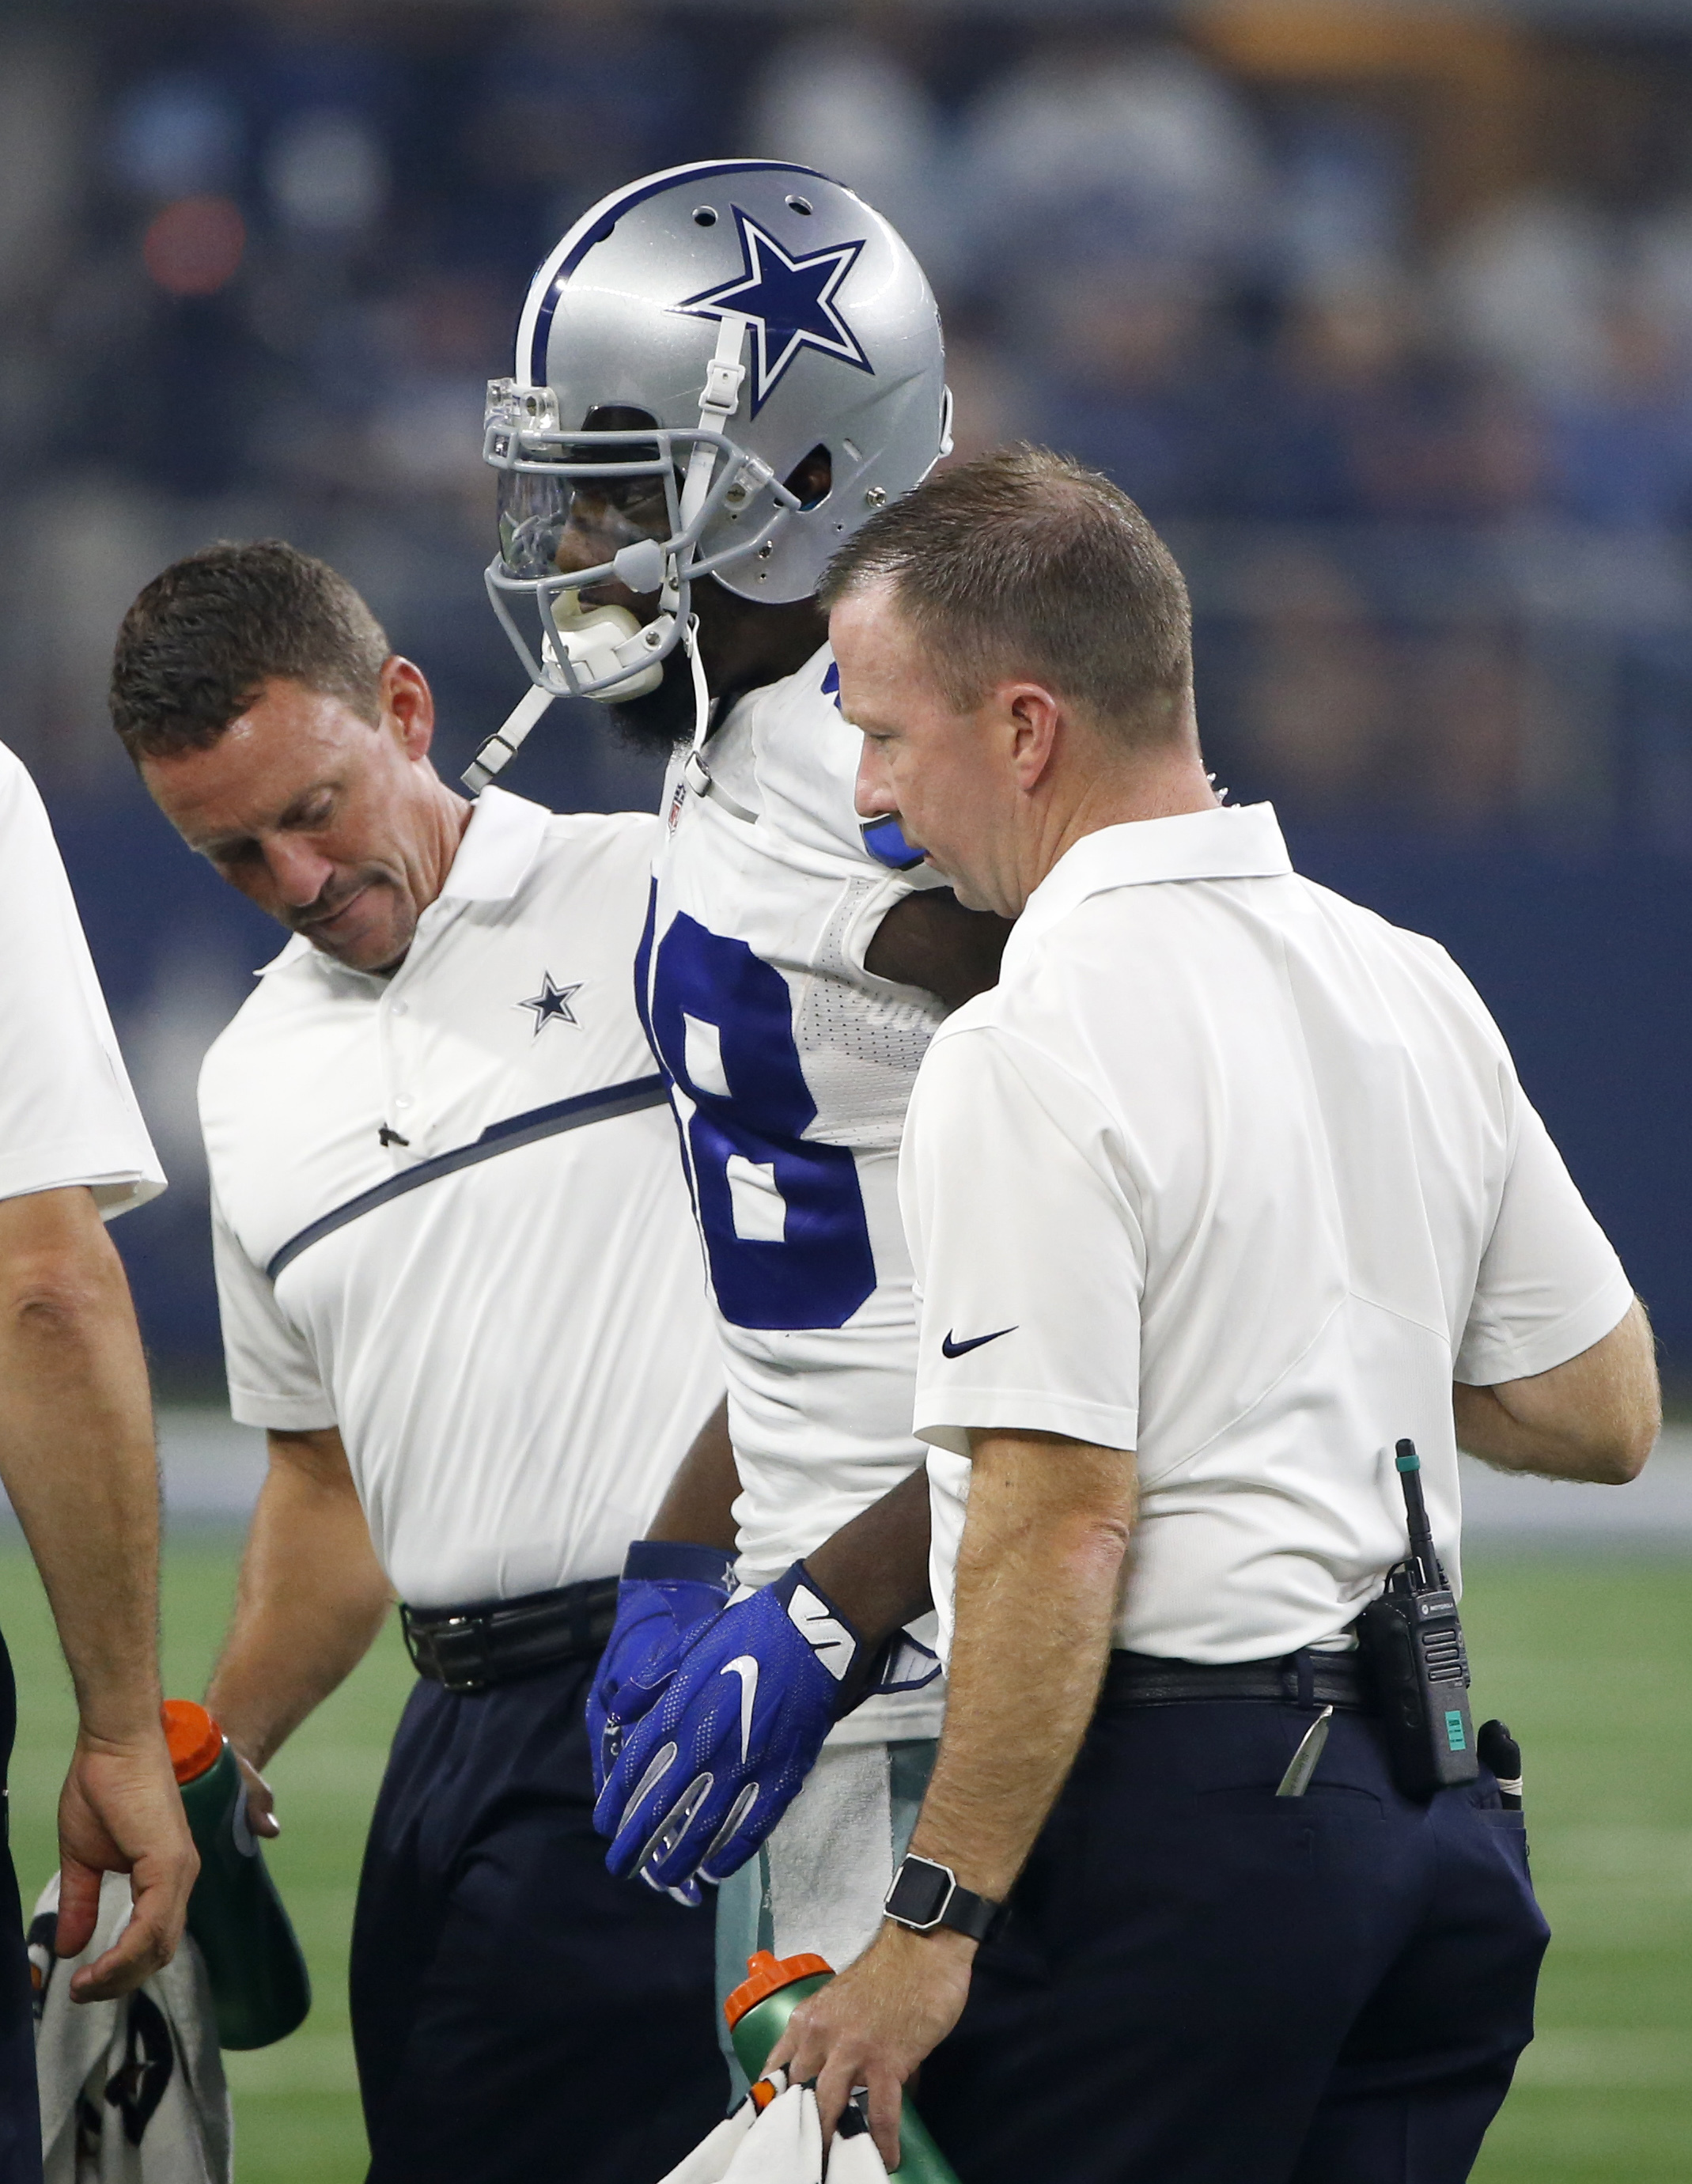 Dallas Cowboys wide receiver Dez Bryant, center, is helped off the field after suffering an unknown injury in the first half of an NFL football game against the Chicago Bears, Sunday, Sept. 25, 2016, in Arlington, Texas. (AP Photo/Ron Jenkins)